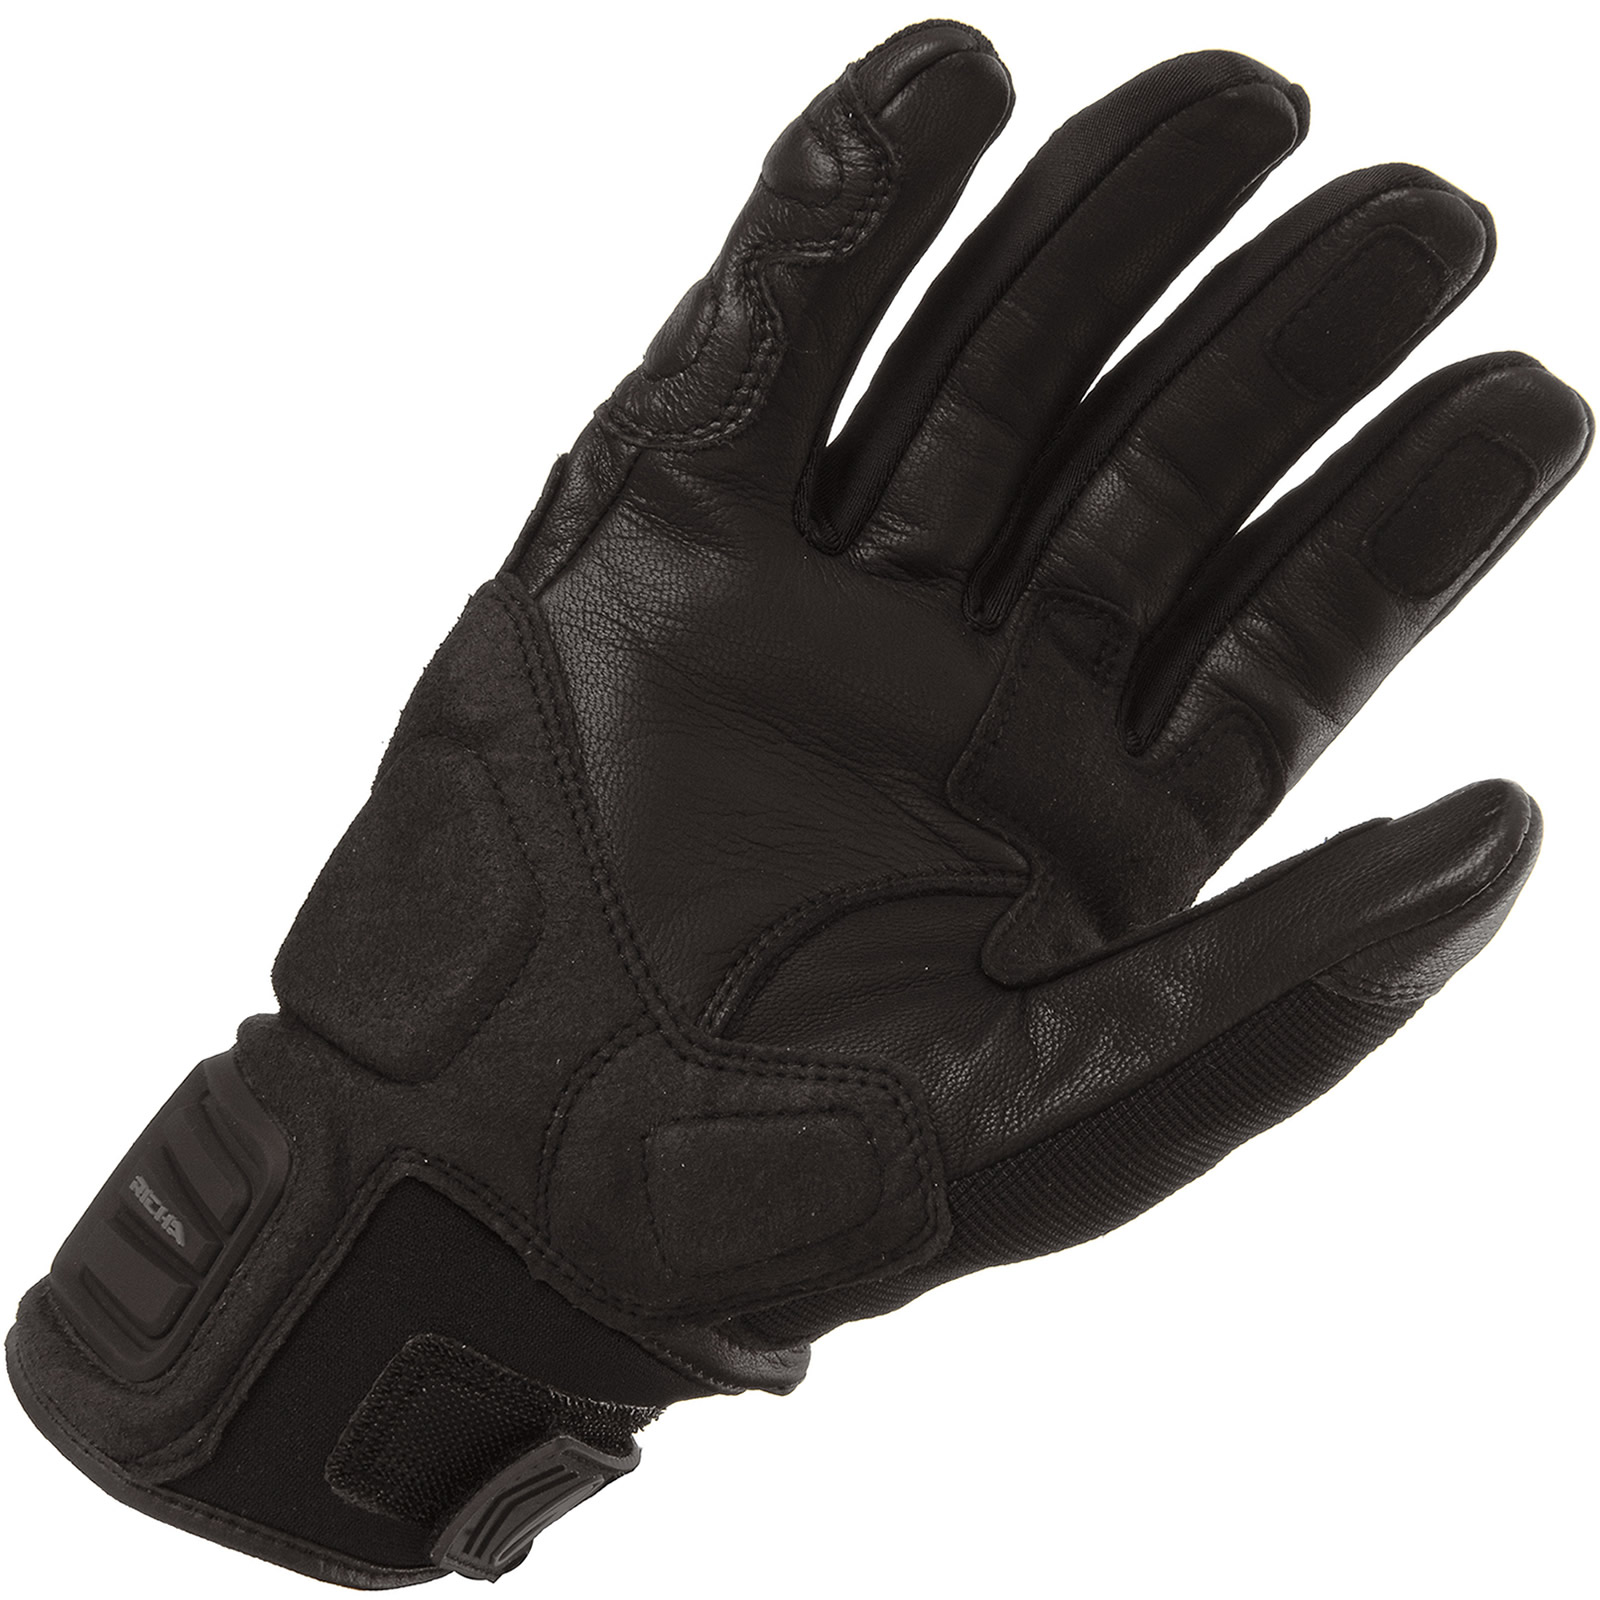 Motorcycle gloves richa - Richa Evolution Mens Motorcycle Gloves Leather Textile Vented